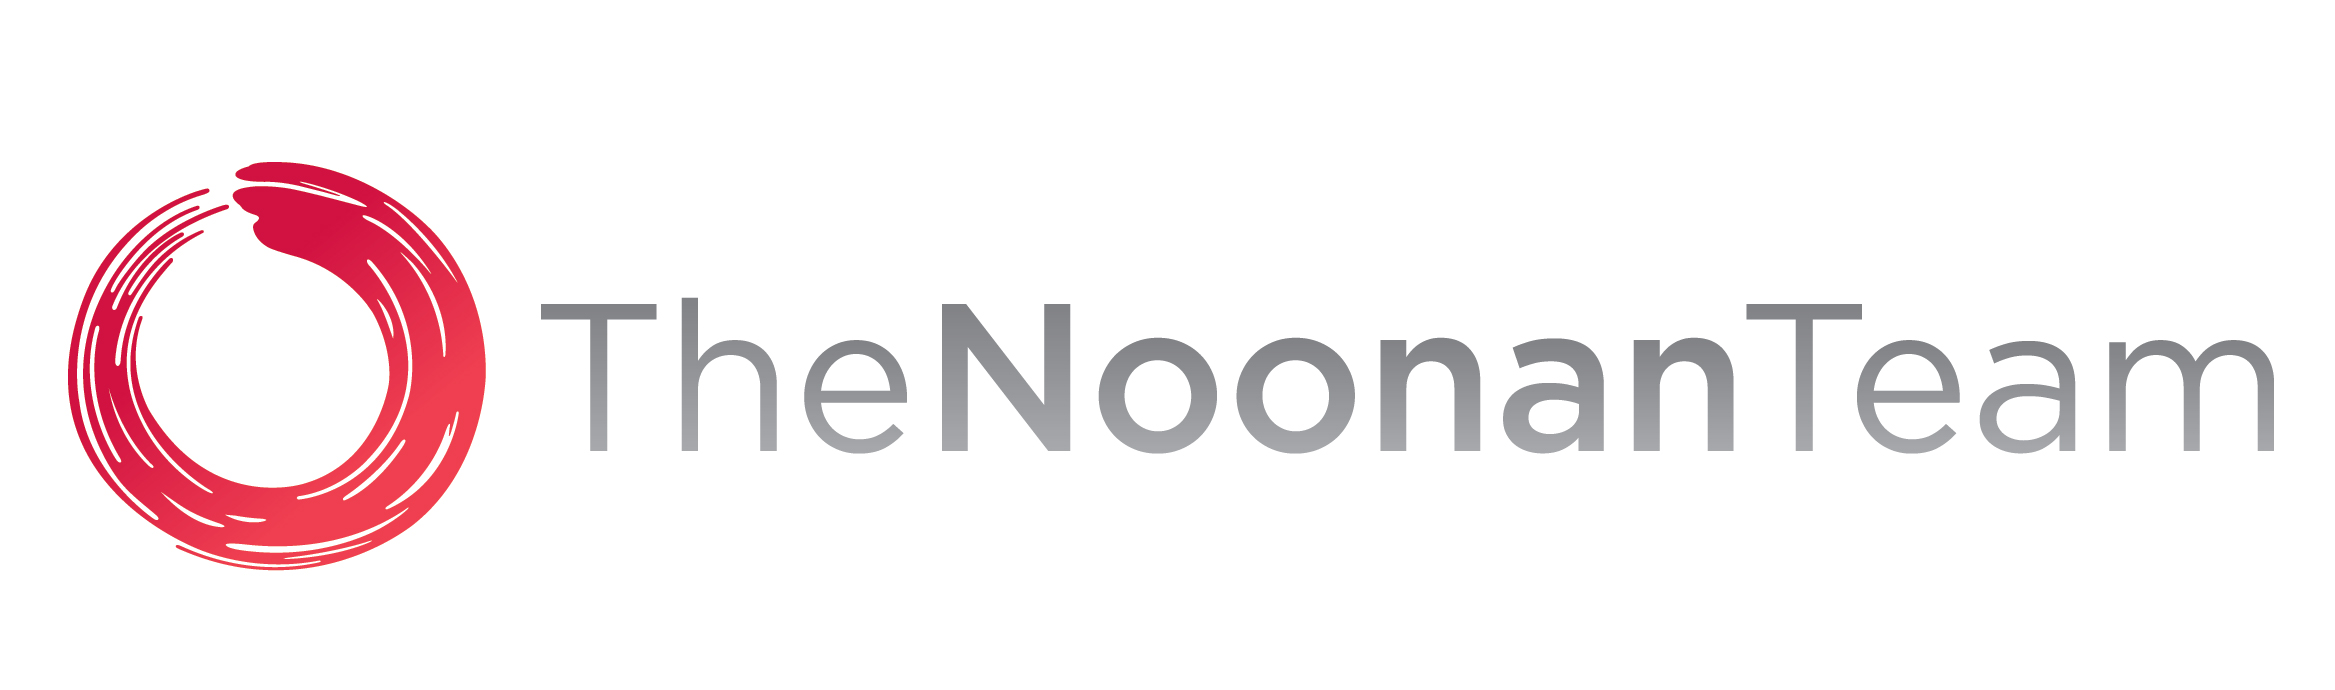 The Noonan Team - Keller Williams Realty logo